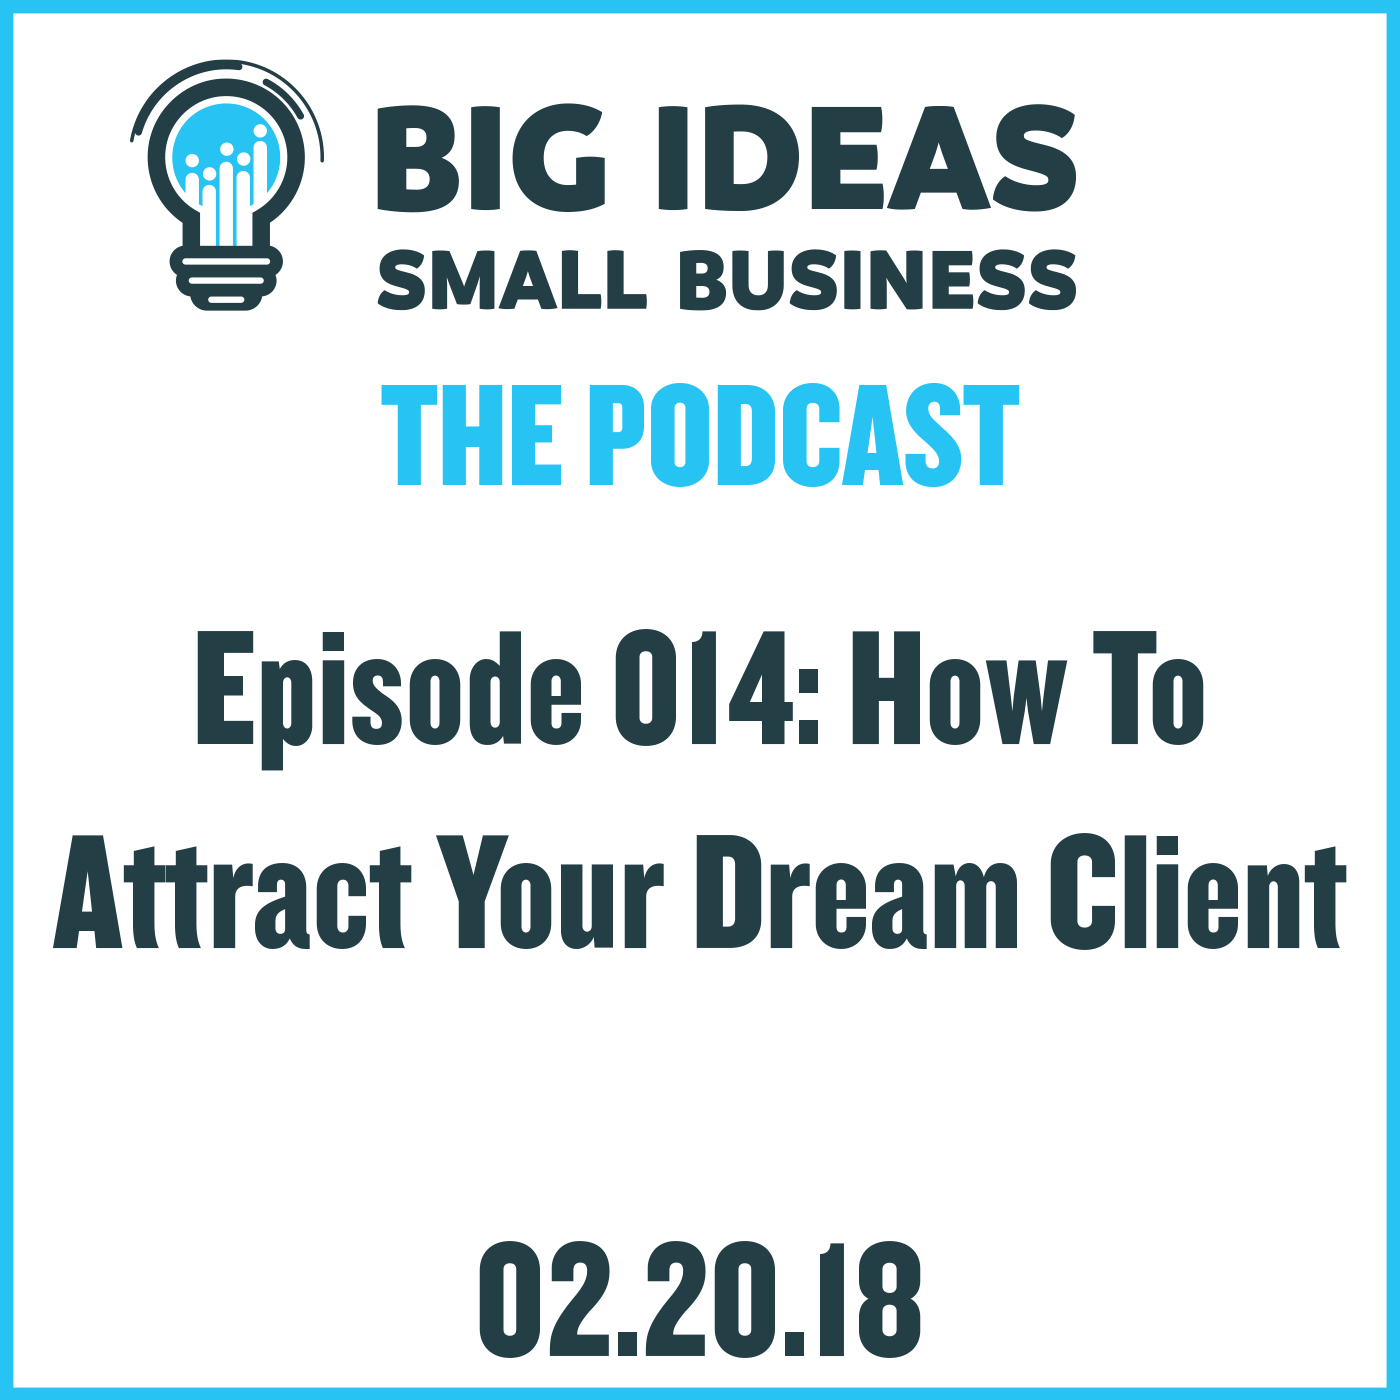 How to Attract Your Dream Client